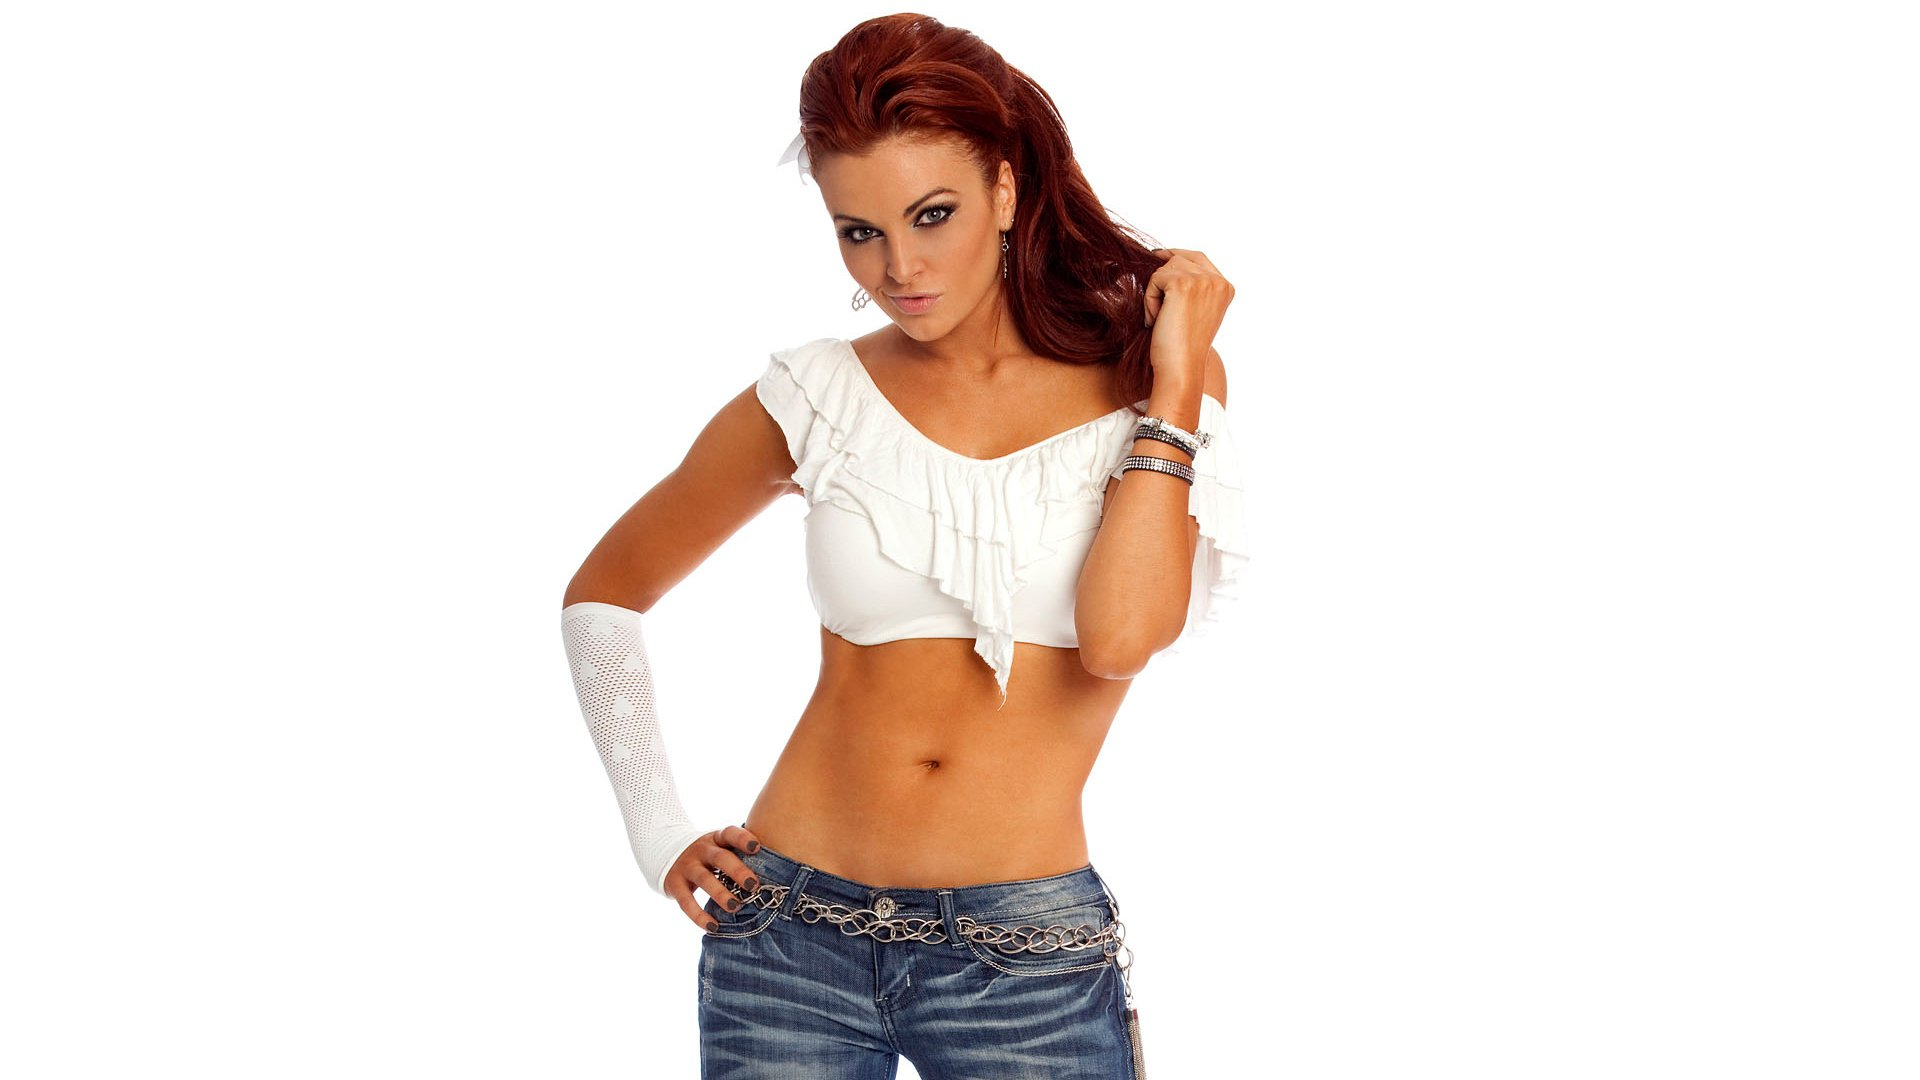 1920x1080 - Maria Kanellis Wallpapers 1